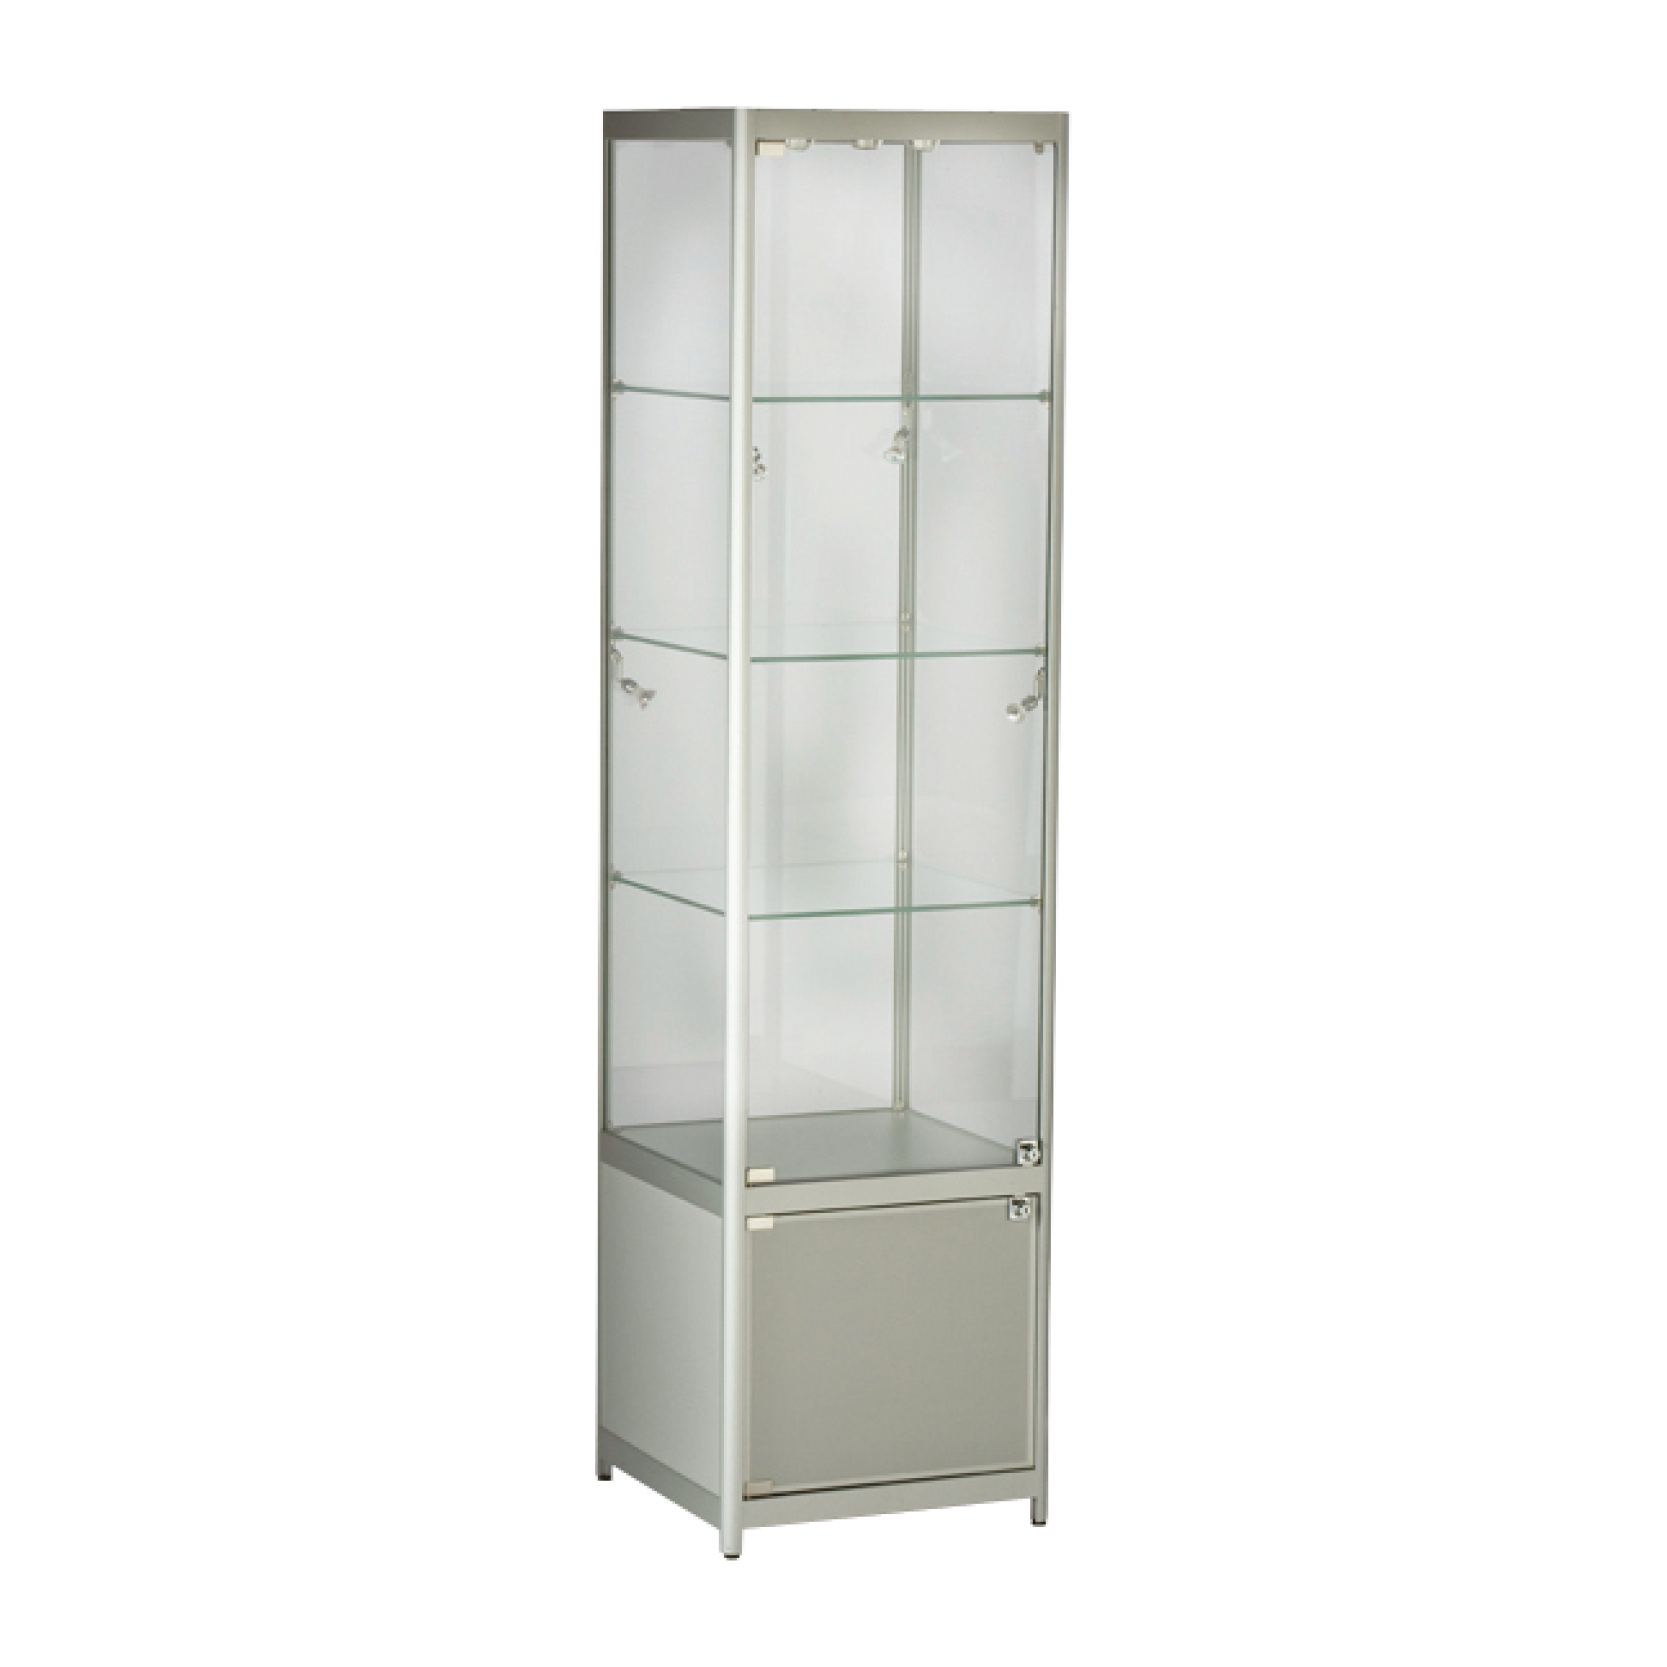 TS31-500 Tallboy Showcase with Cabinet